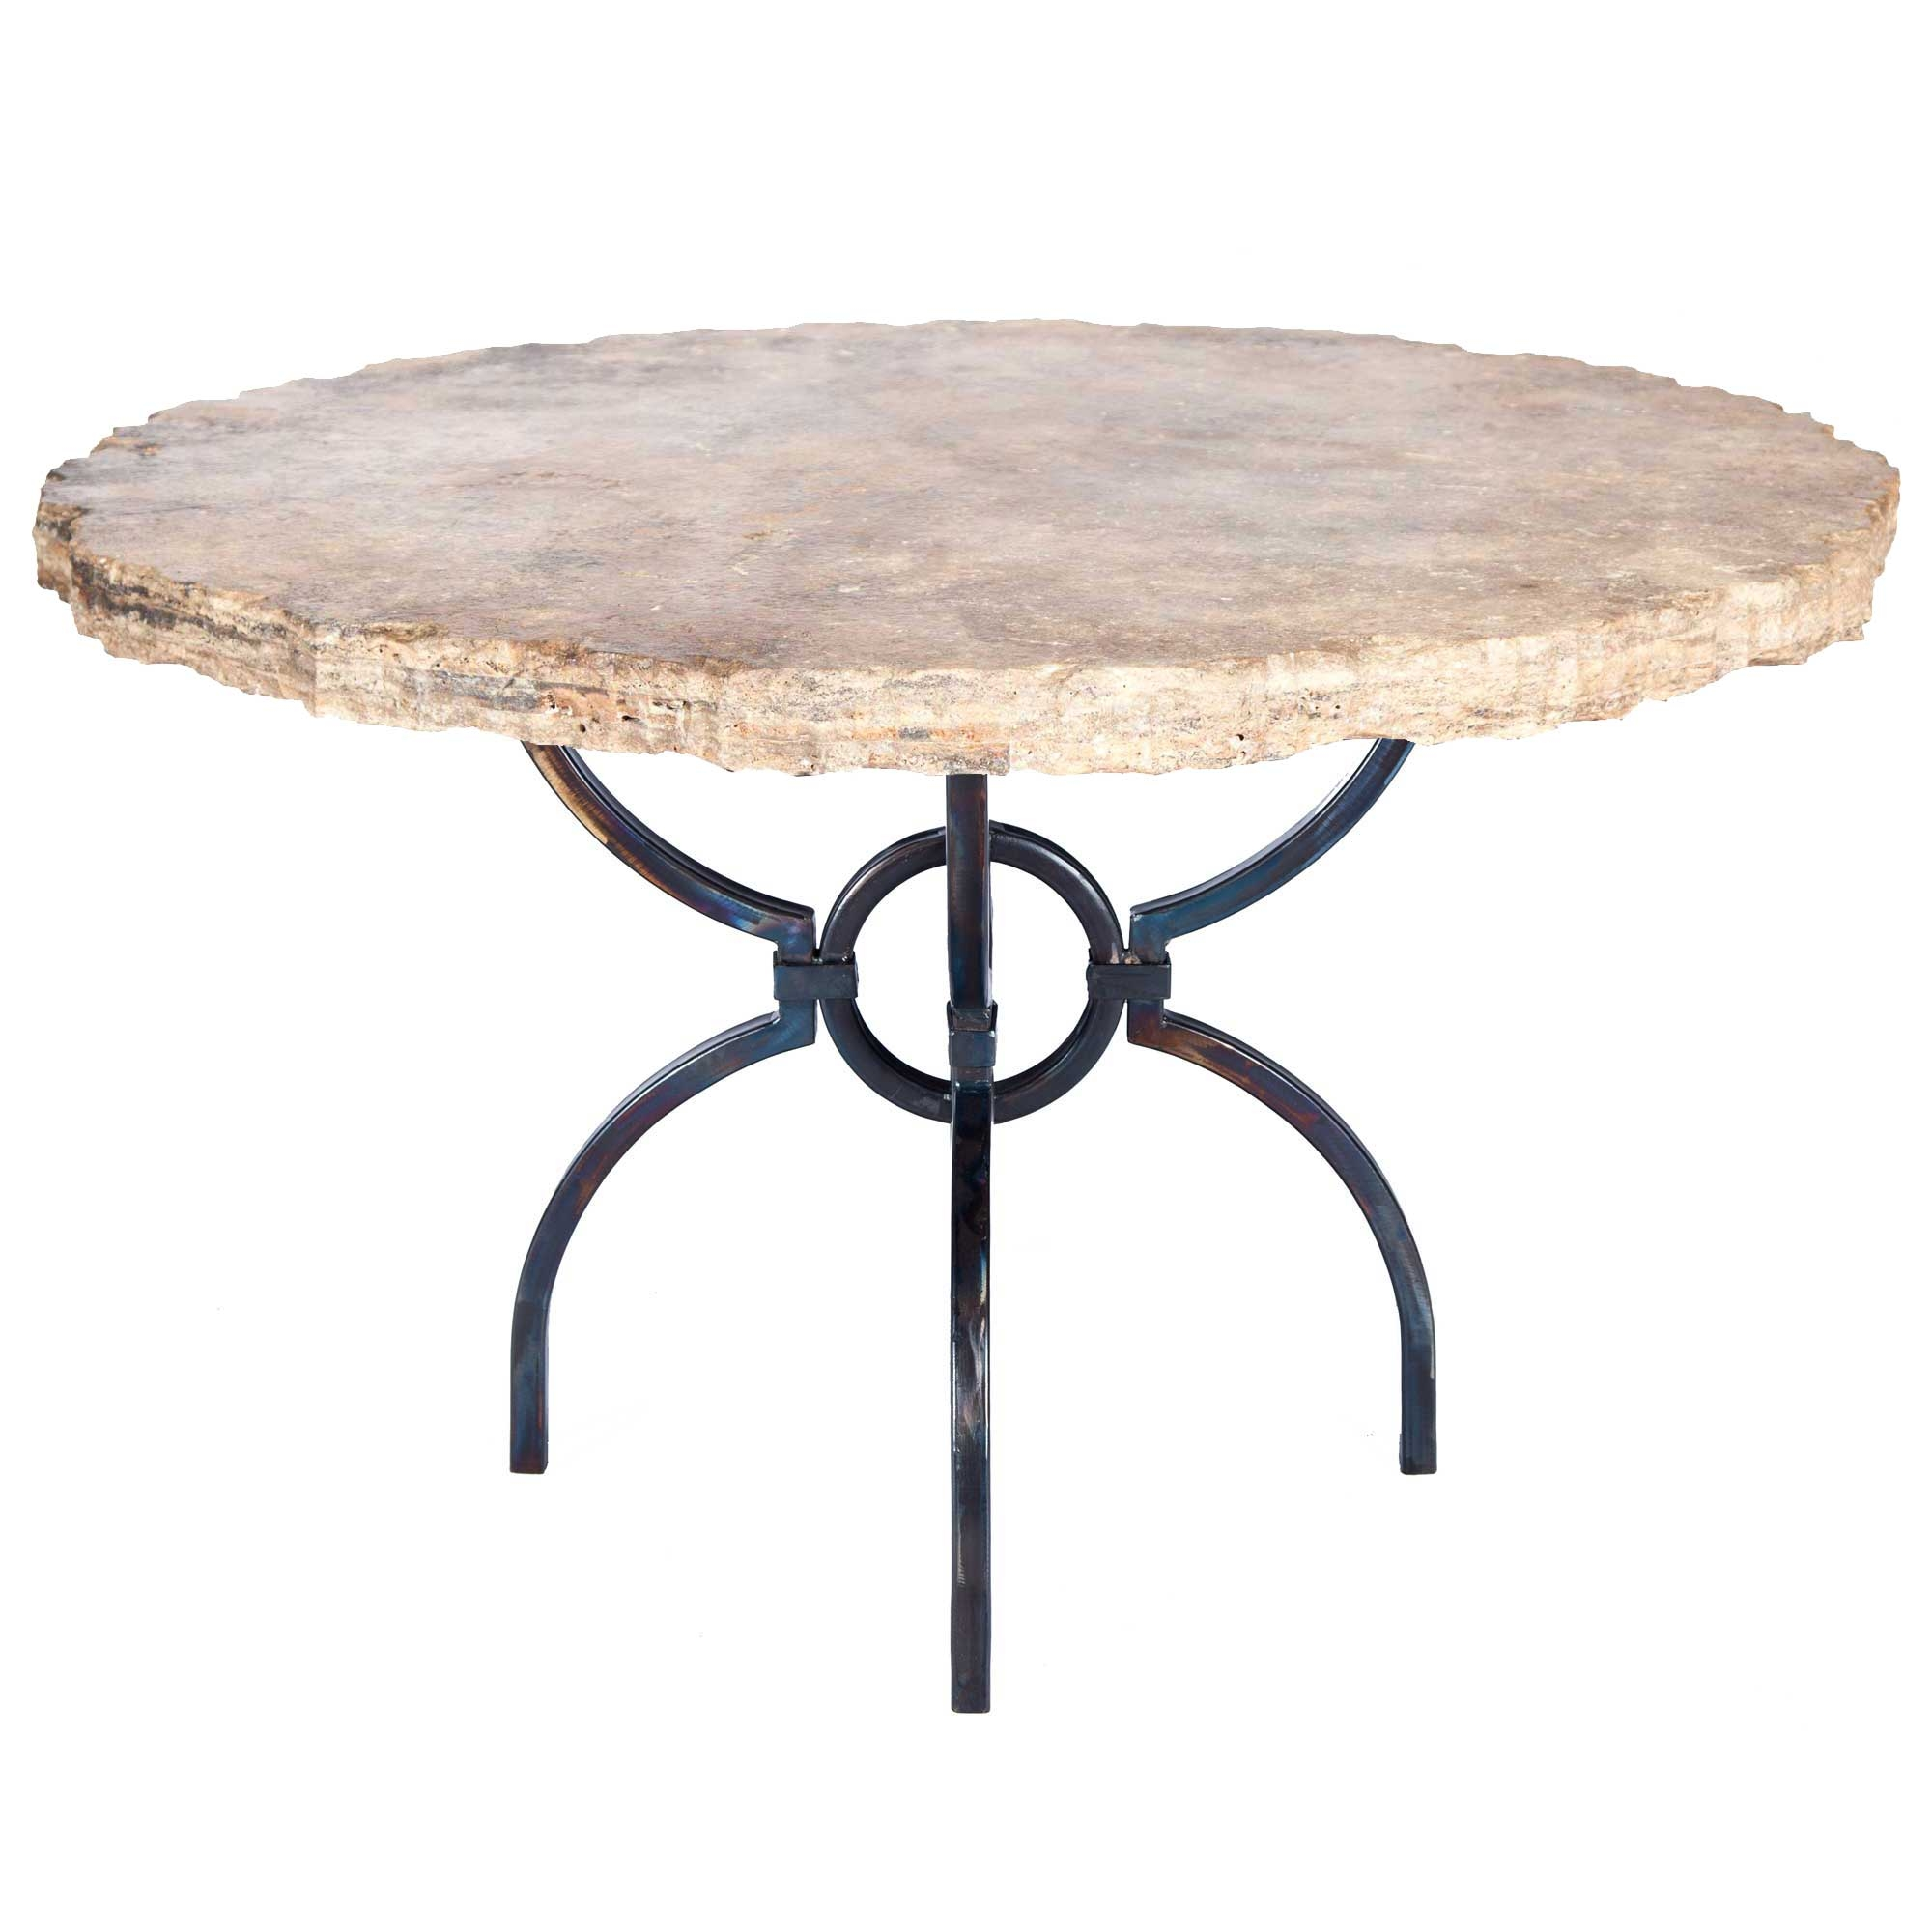 "Logan Iron Dining Table with 48"" Round Marble Top"